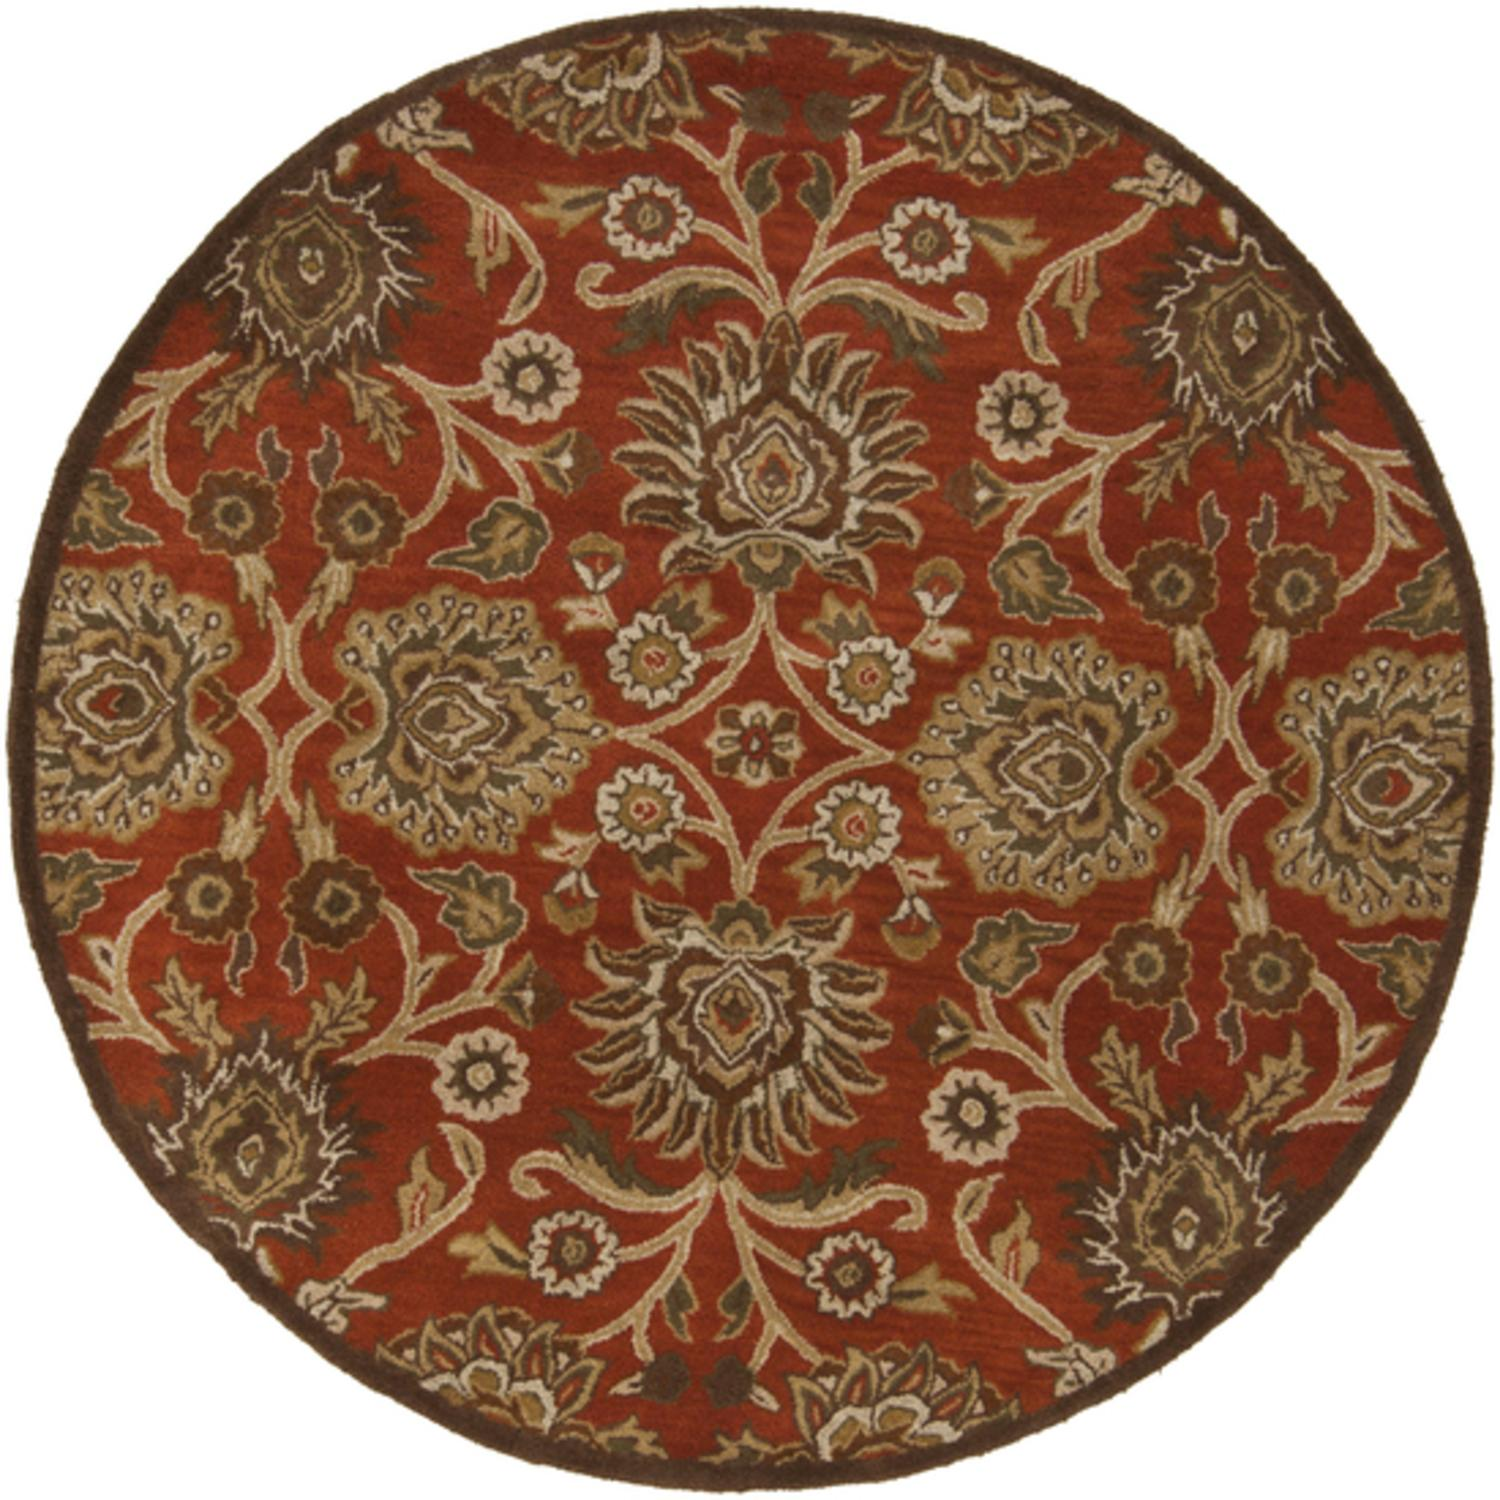 4' Octavia Biscotti Brown and Caper Green Hand Tufted Wool Round Area Throw Rug